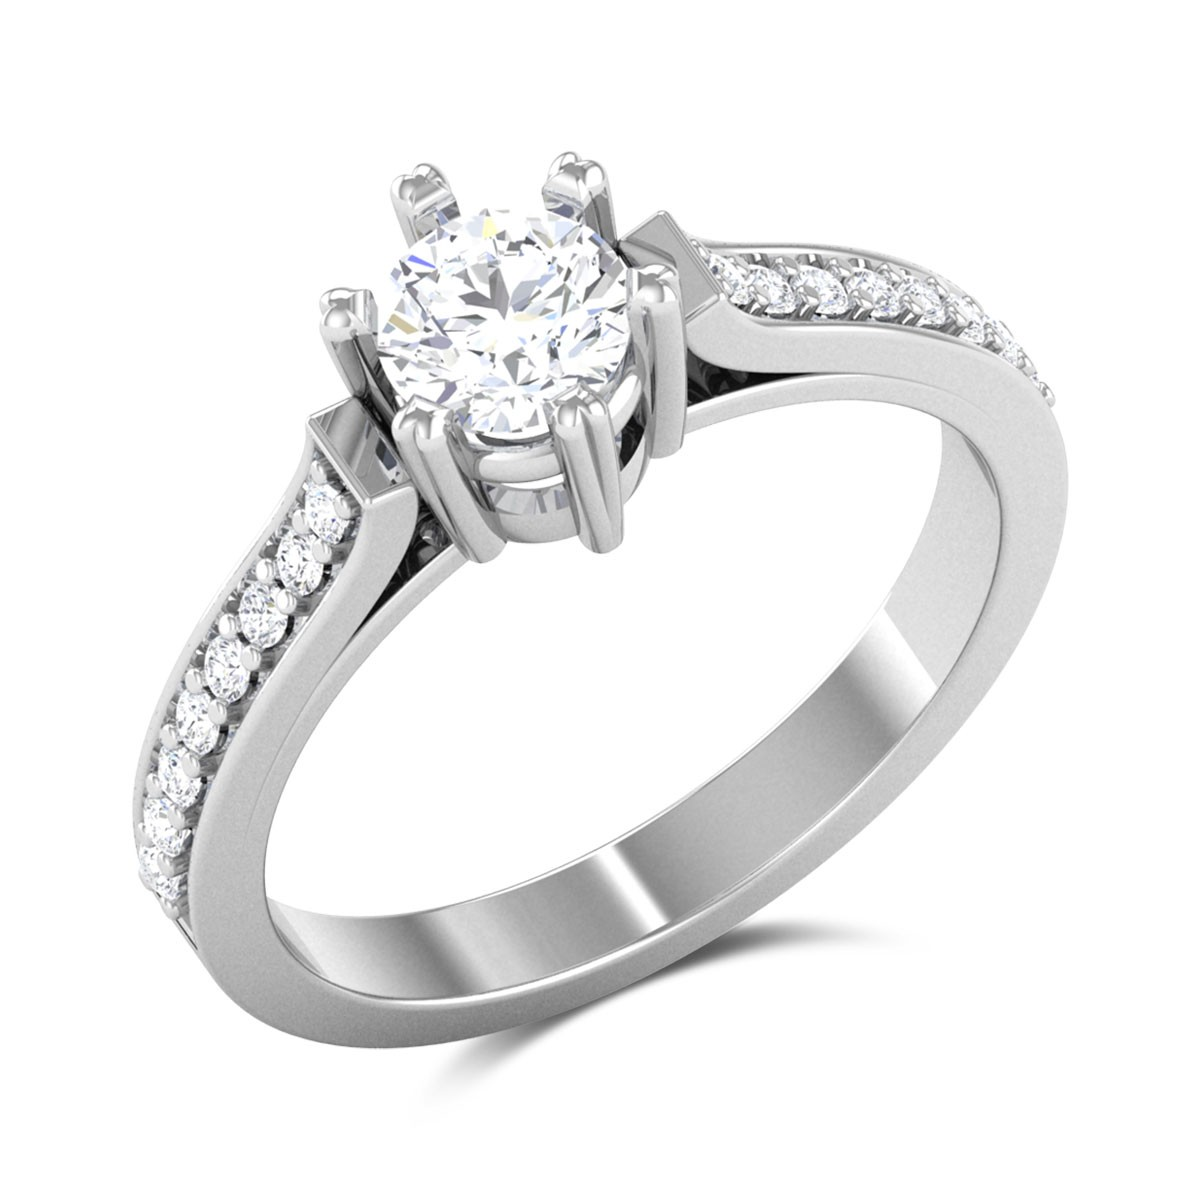 Double Delight 6 Prong Solitaire Ring